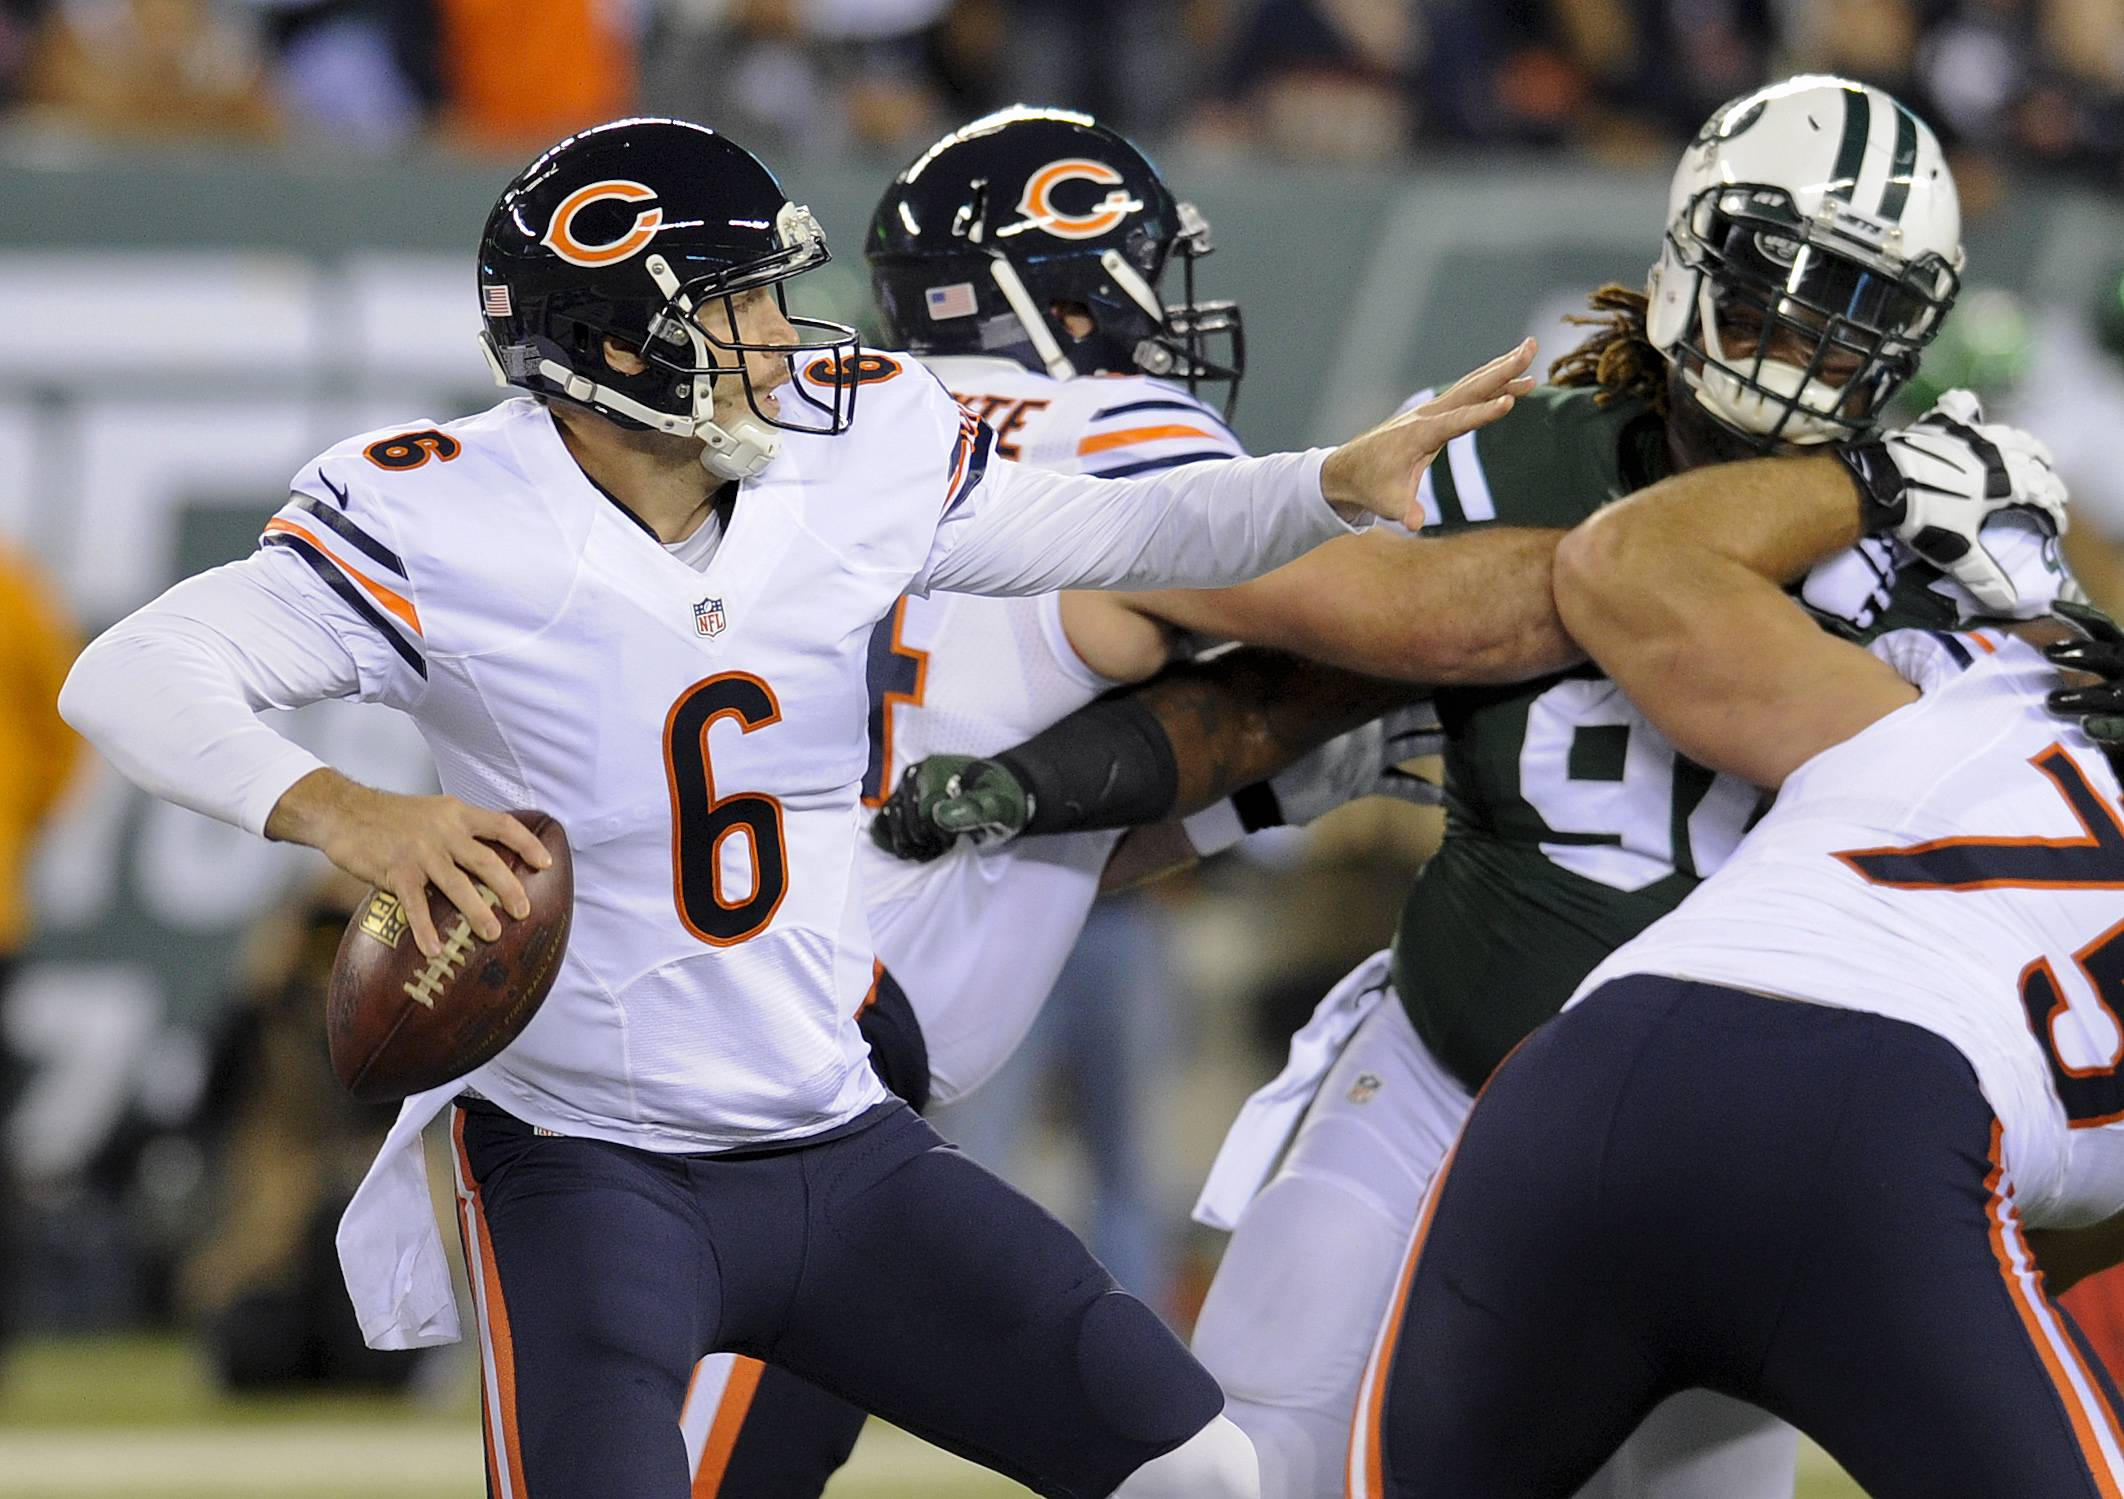 Fresh off a pair of victories, the next challenge for quarterback Jay Cutler and the Bears will be the Green Bay Packers on Sunday at Soldier Field.